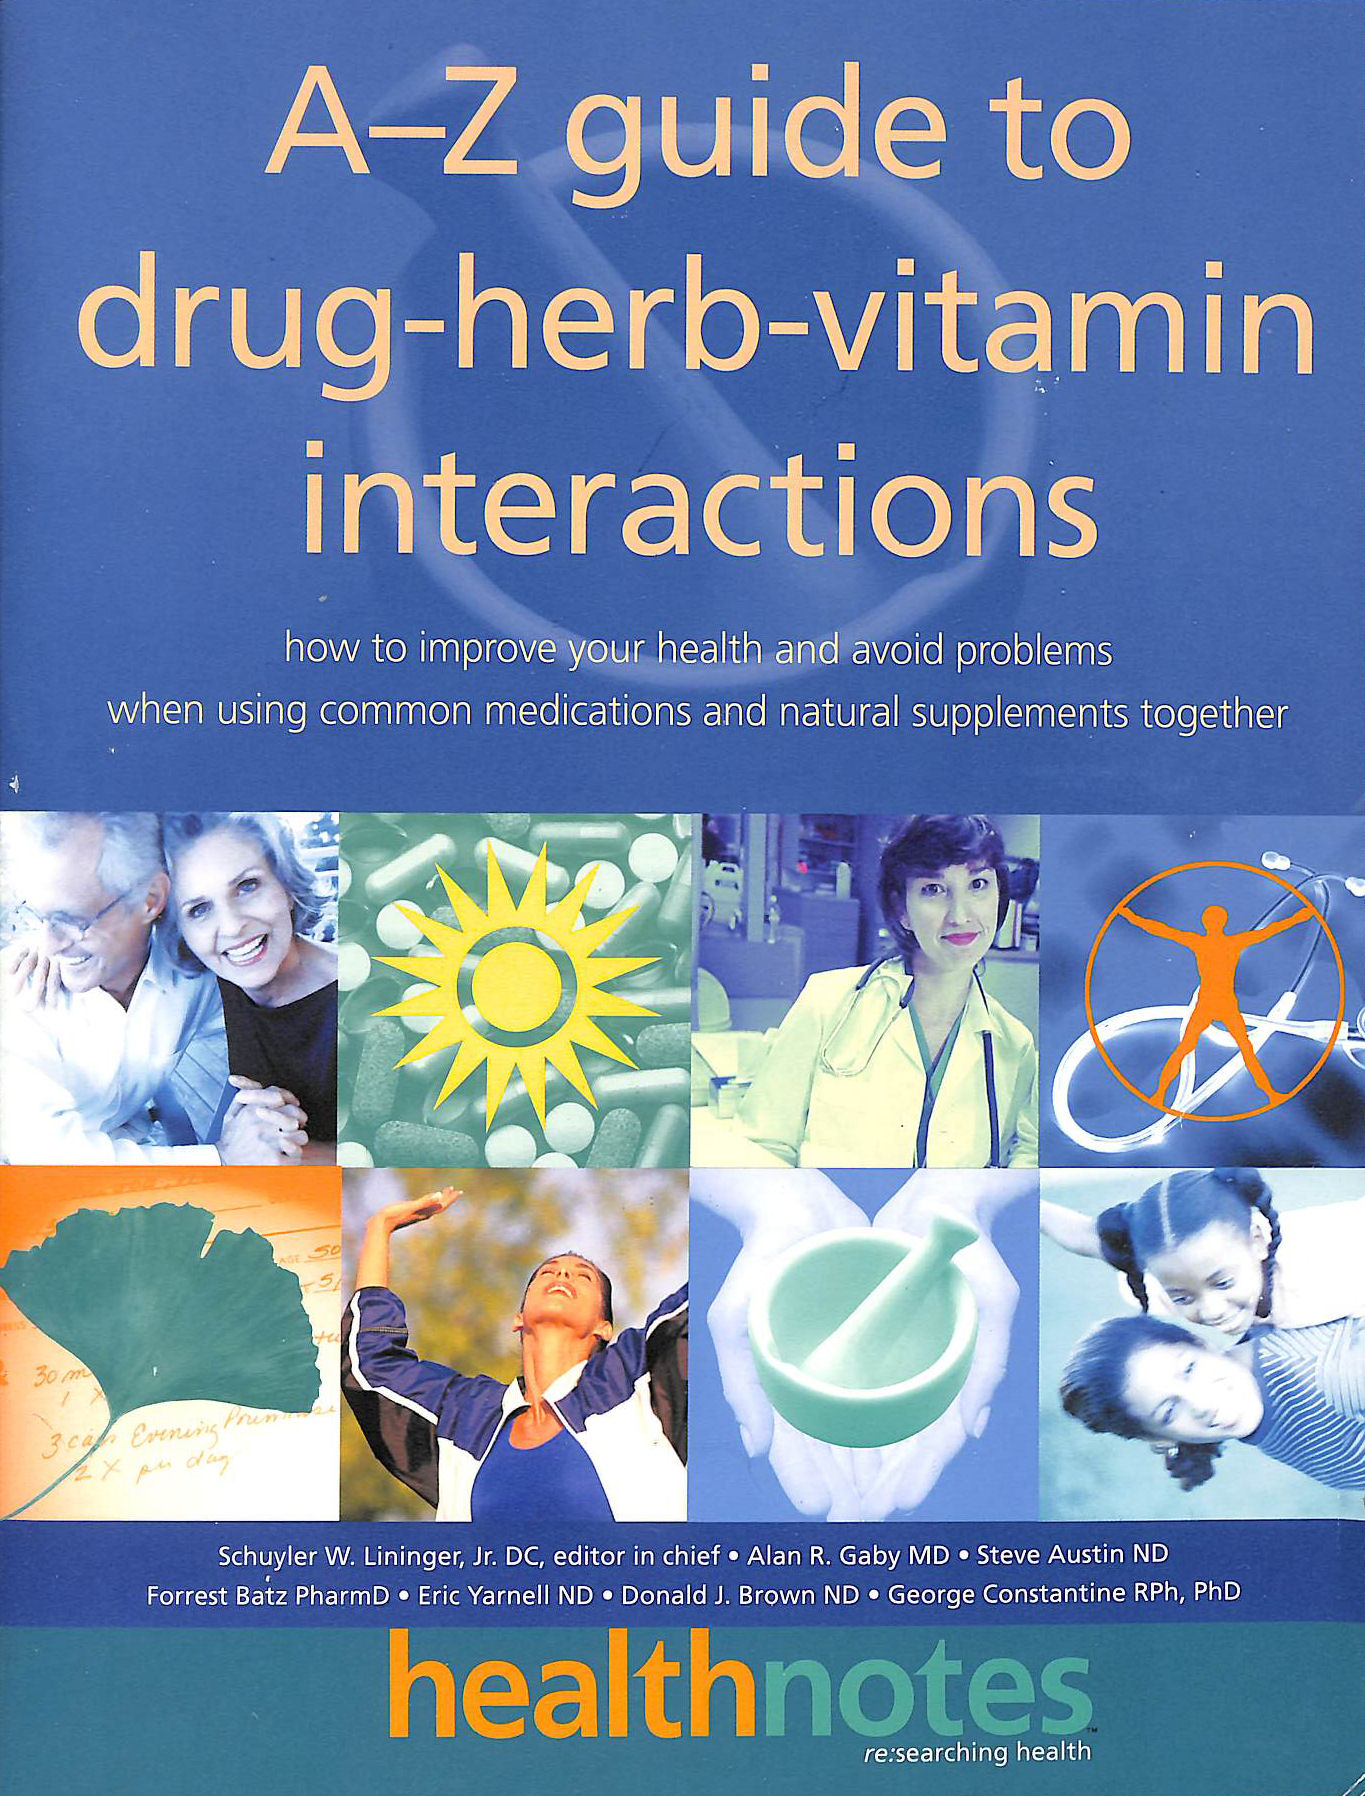 Image for The A-Z Guide to Drug-Herb-Vitamin Interactions